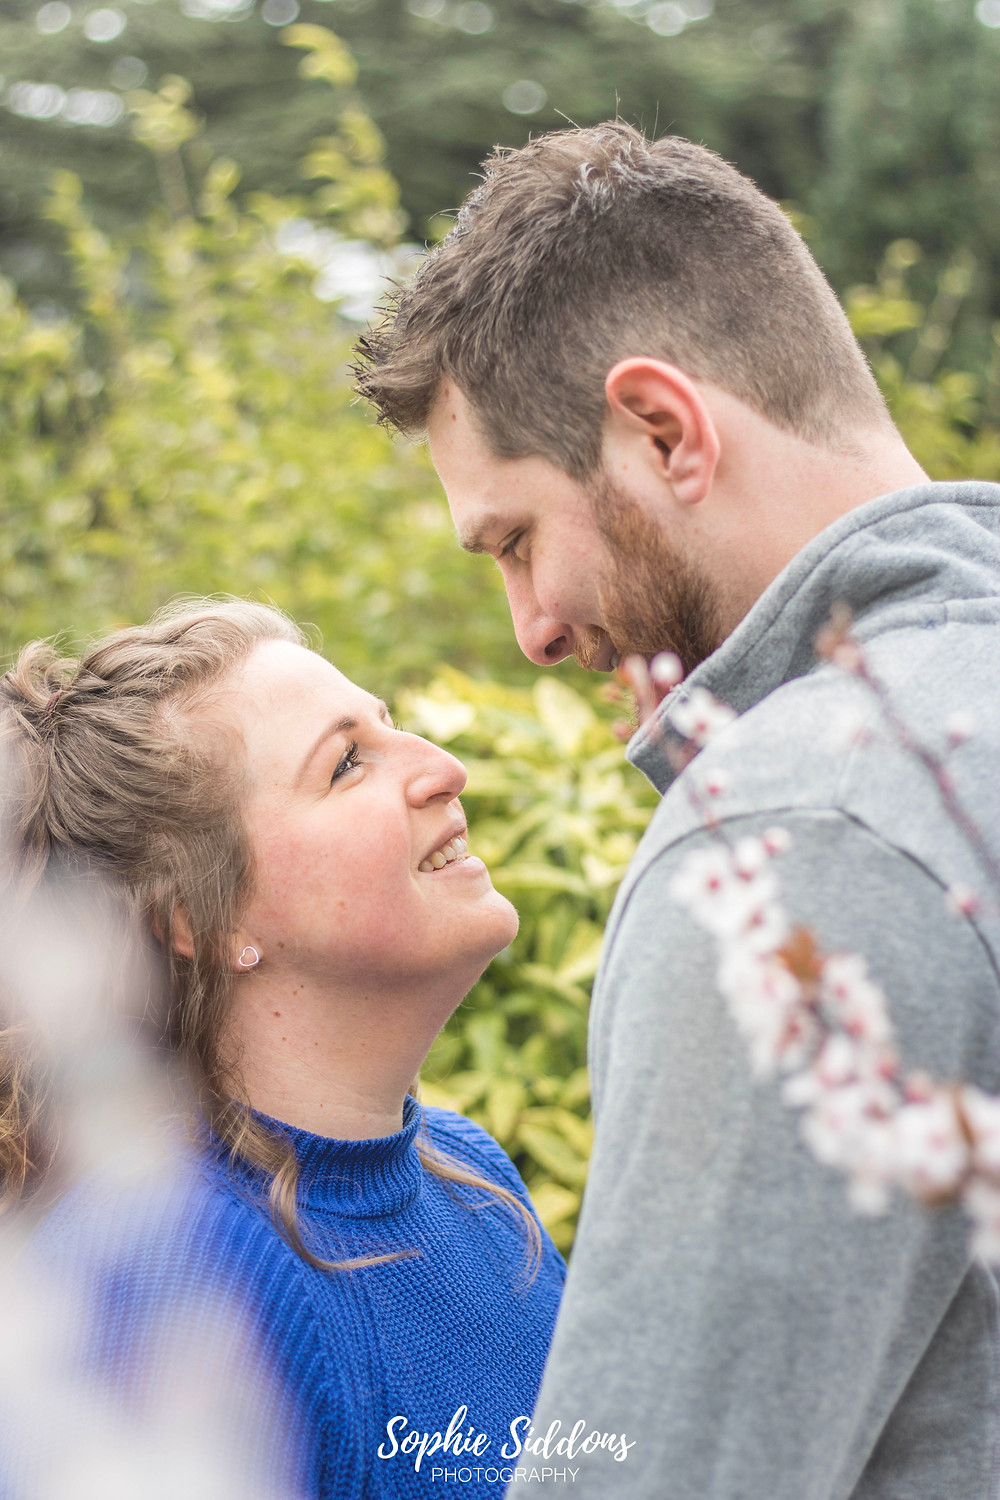 Couples photography, Cheshire